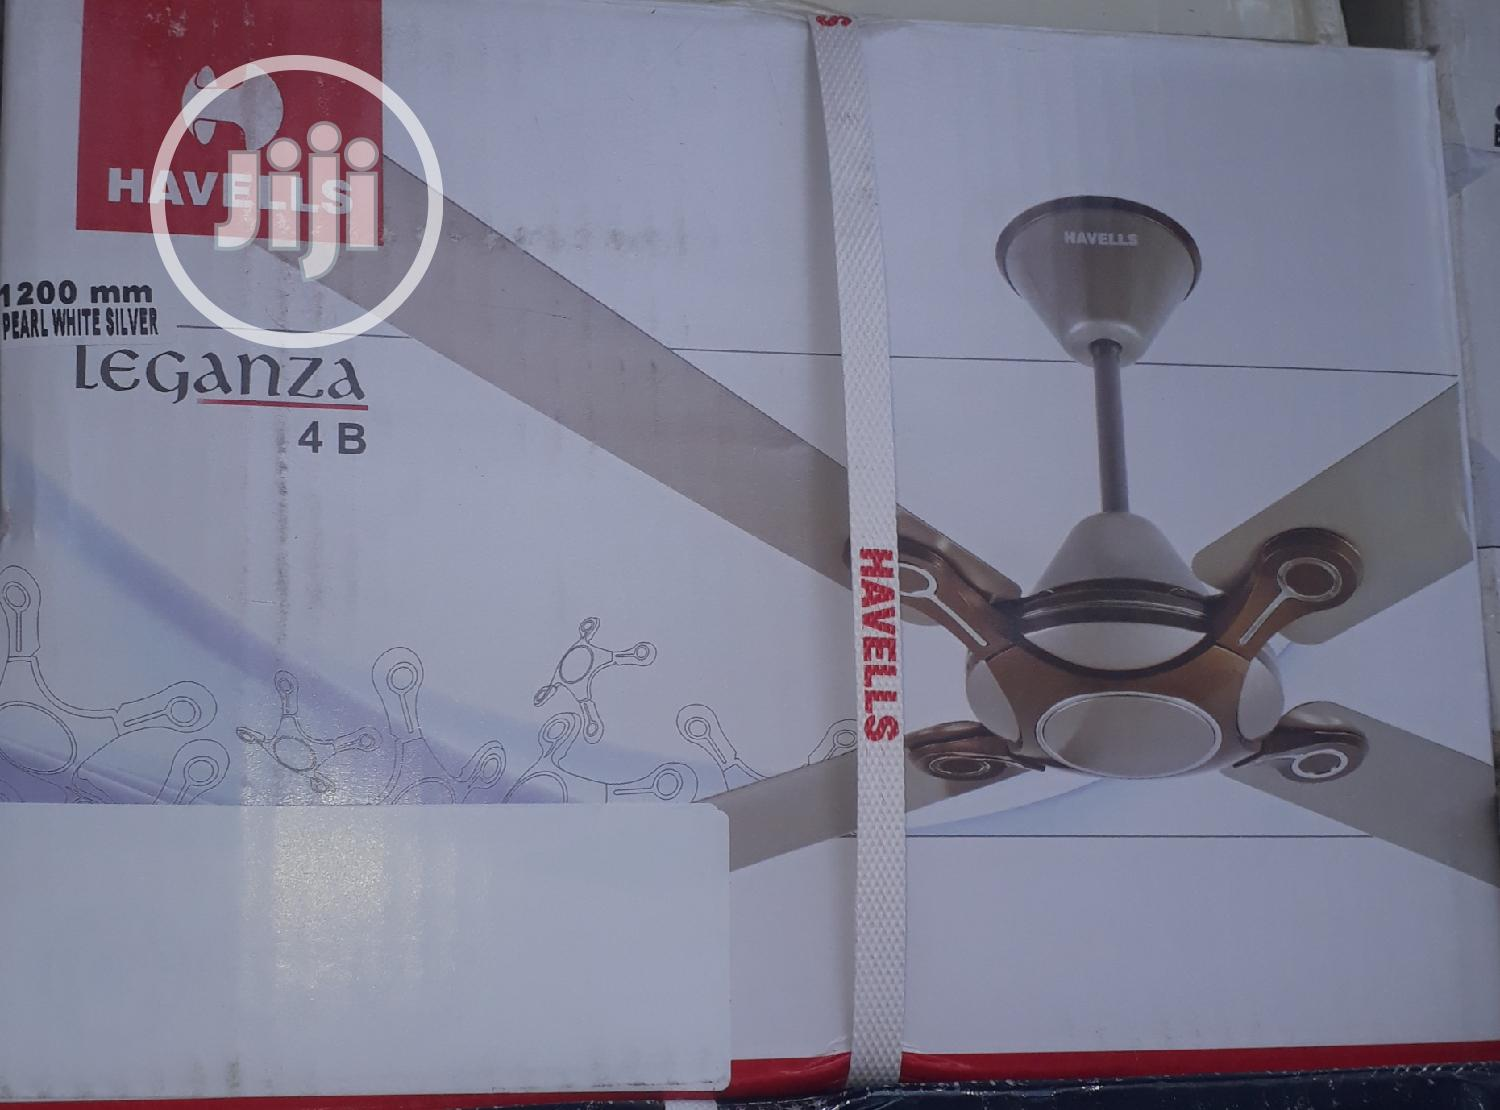 Harvells Ceiling Fan Copper | Home Appliances for sale in Lagos Island, Lagos State, Nigeria